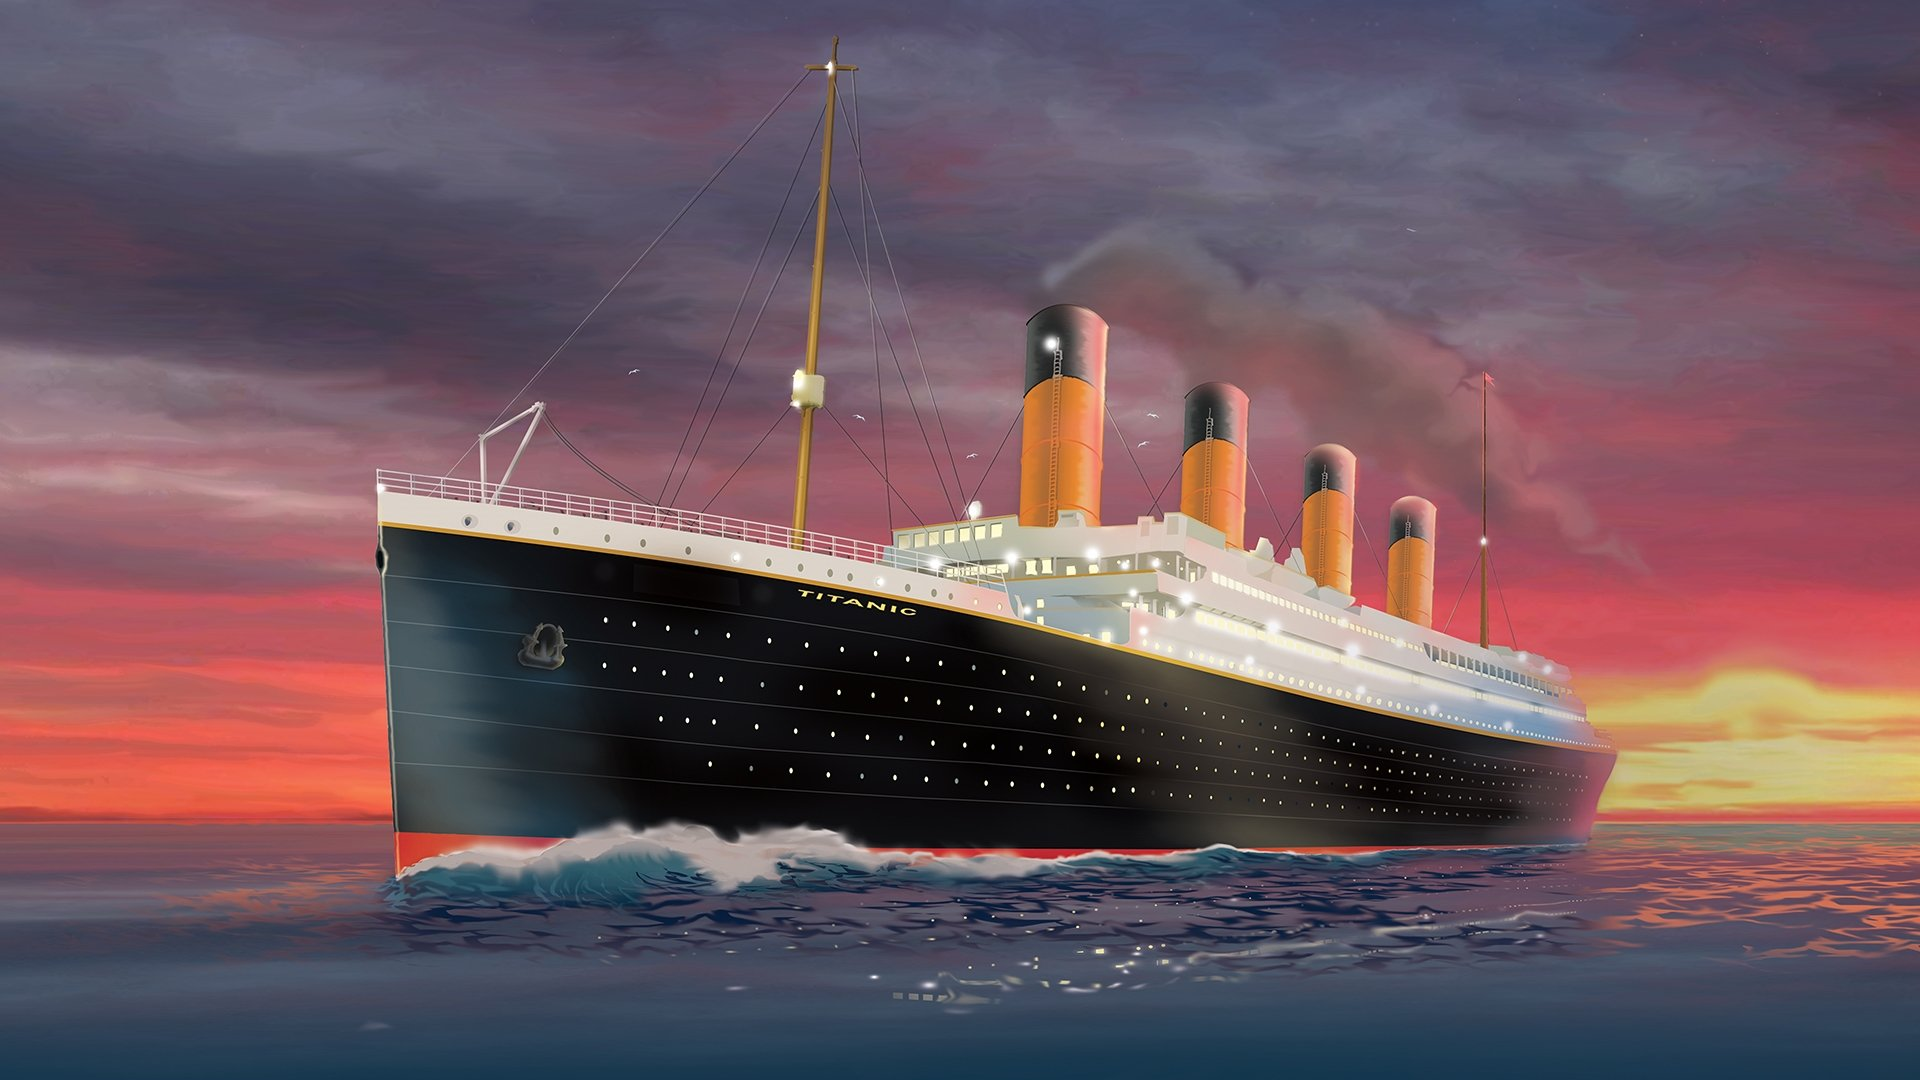 Titanic Wallpaper For Pc